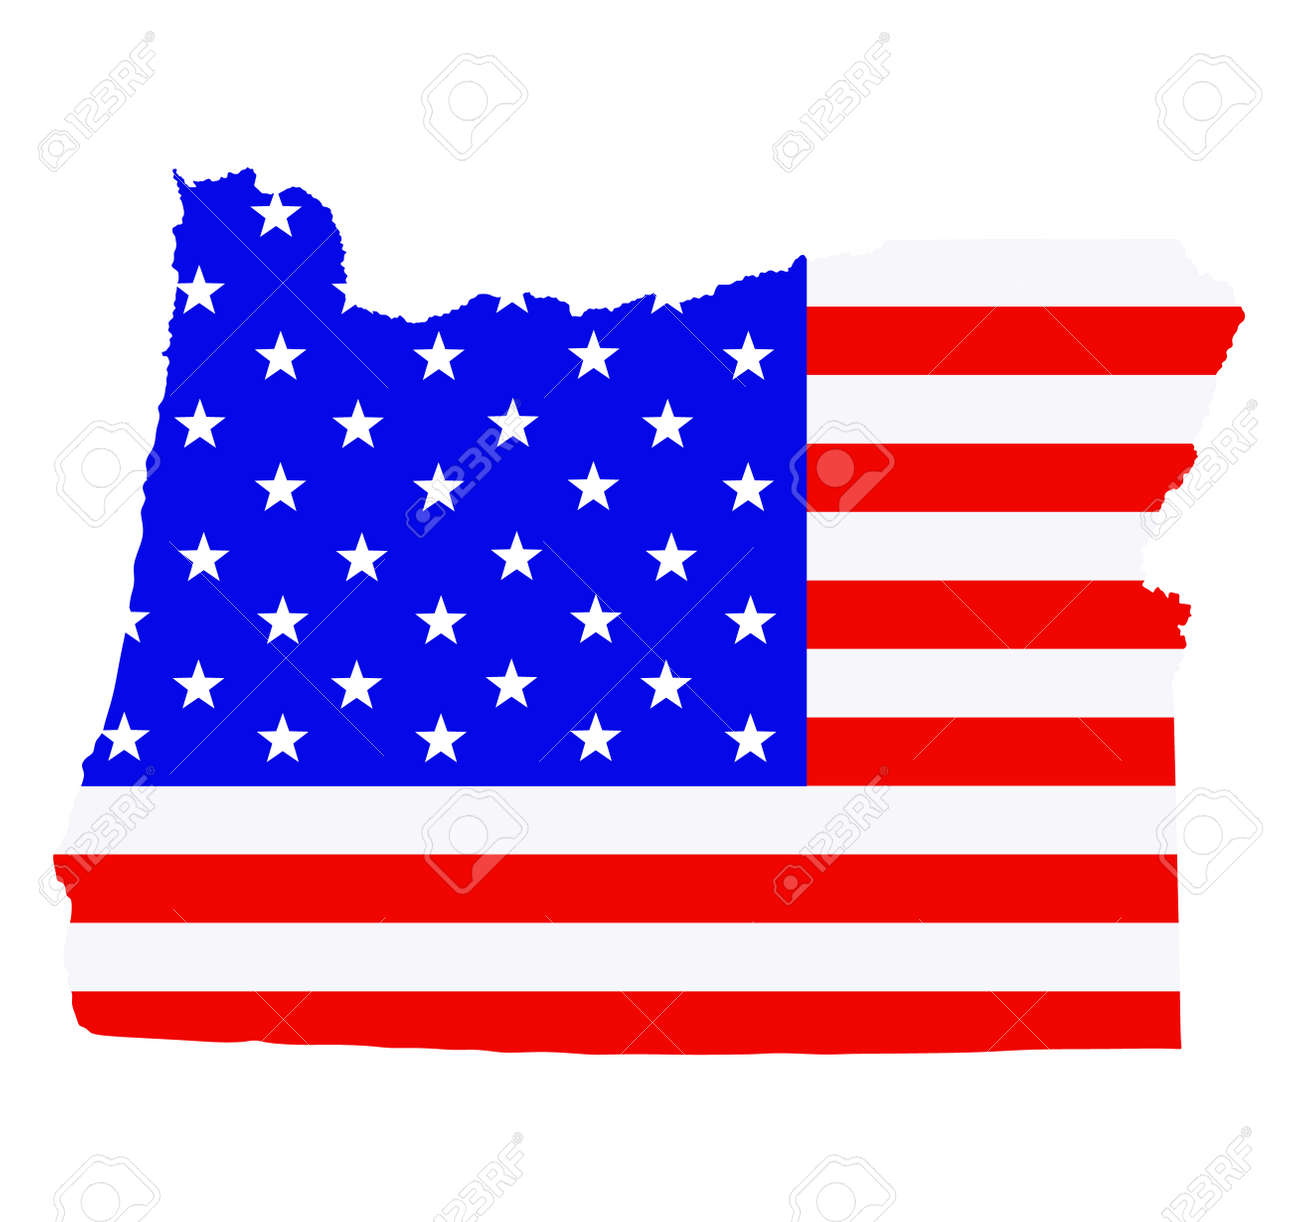 Oregon state map vector silhouette illustration. United States of America flag over Oregon map. USA, American national symbol of pride and patriotism. Vote election campaign banner. - 172749315